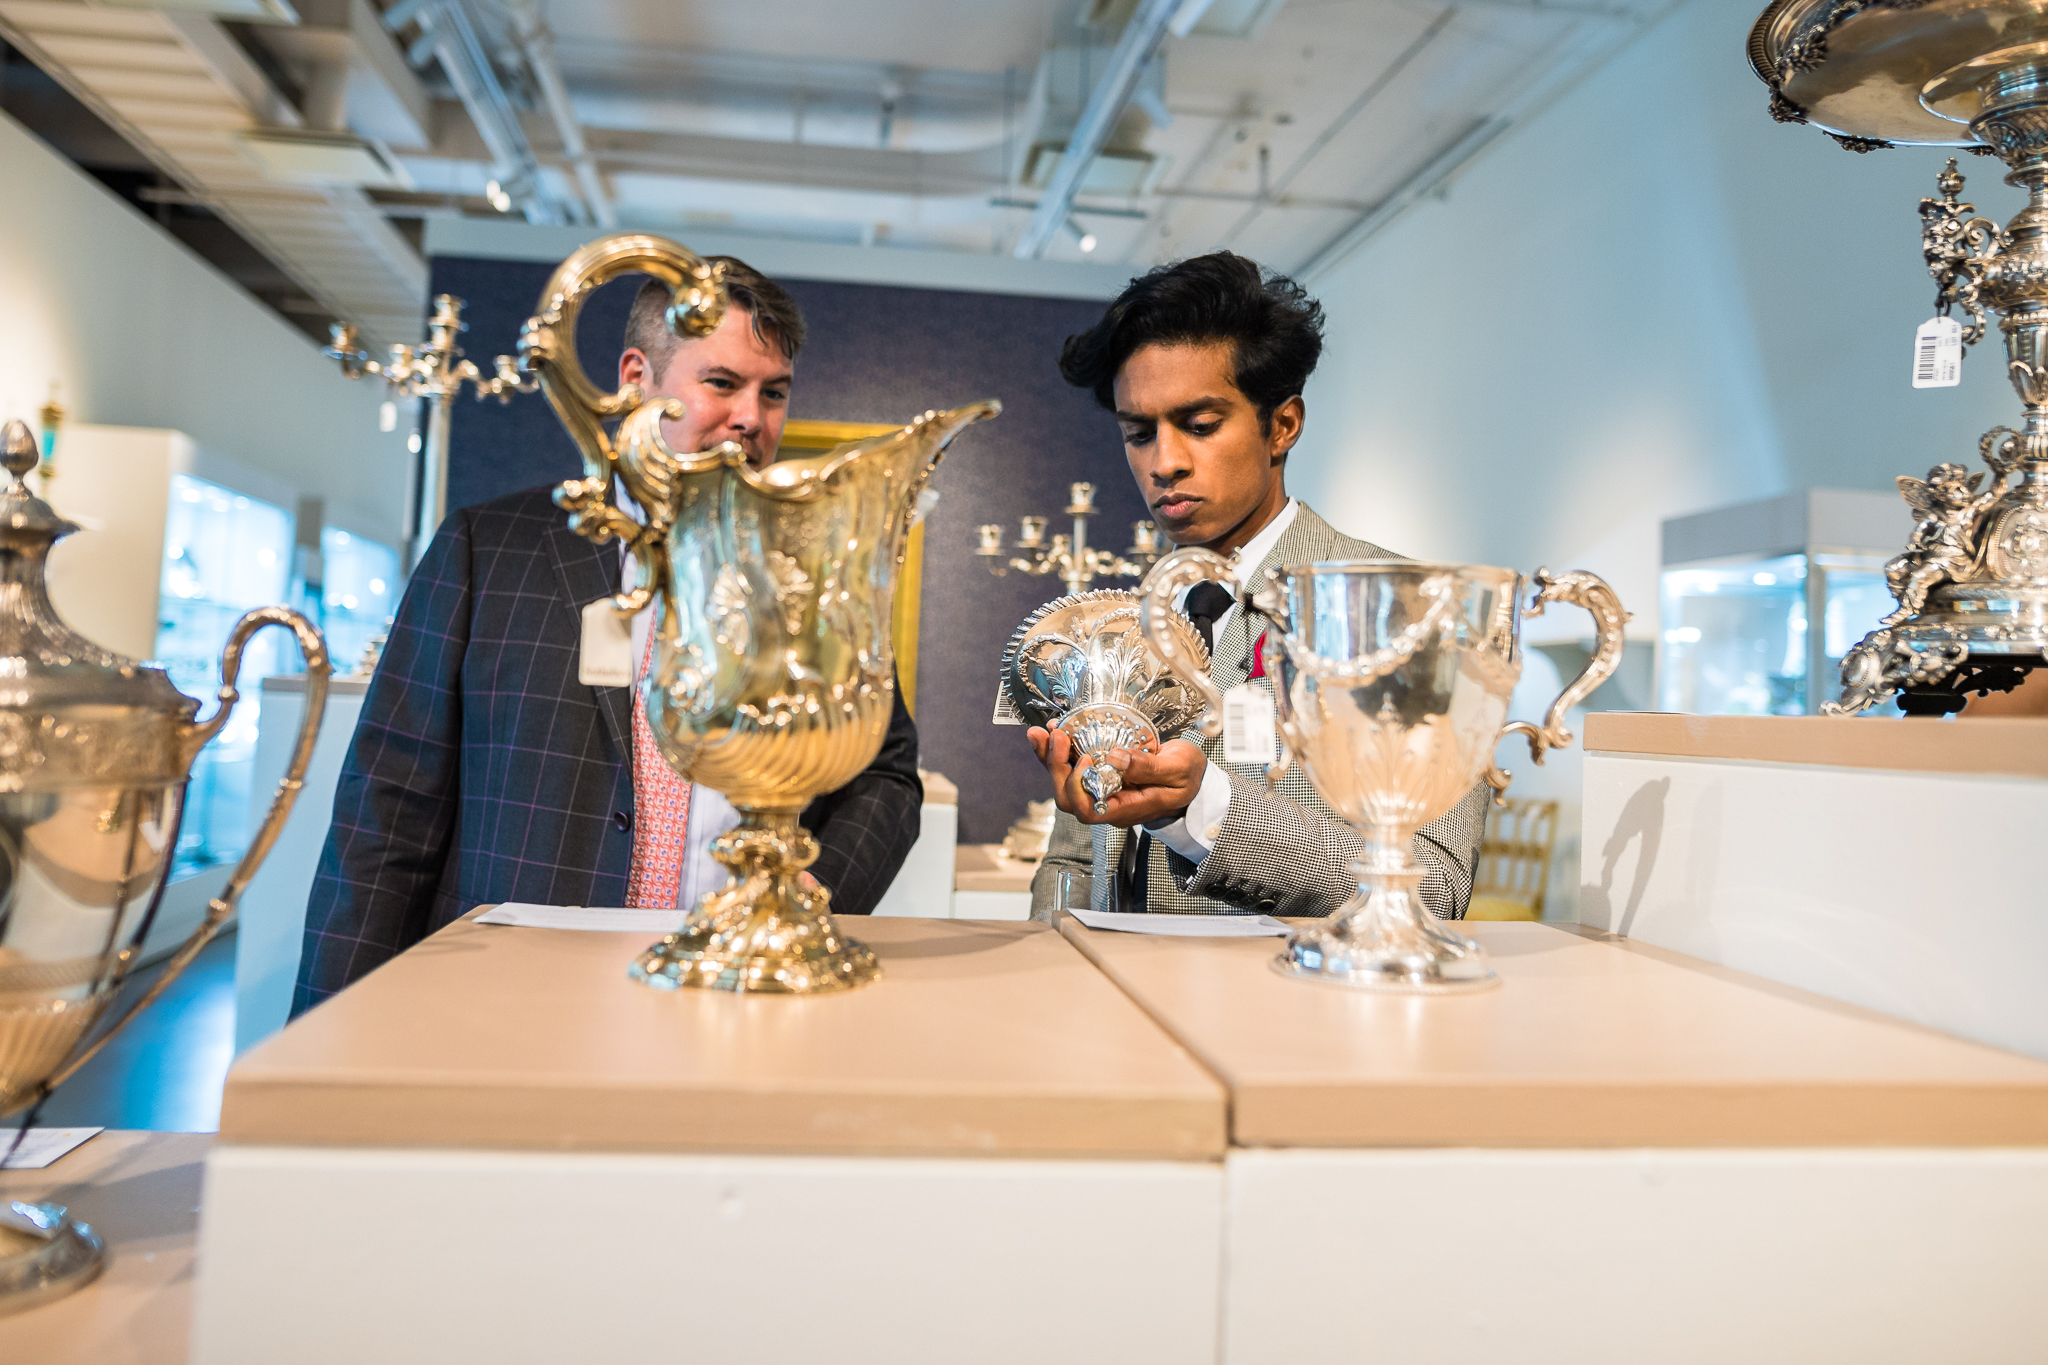 John Ward, head of department, silver & vertu and Specialist at Sotheby's, and Rajiv Surendra perusing Silver